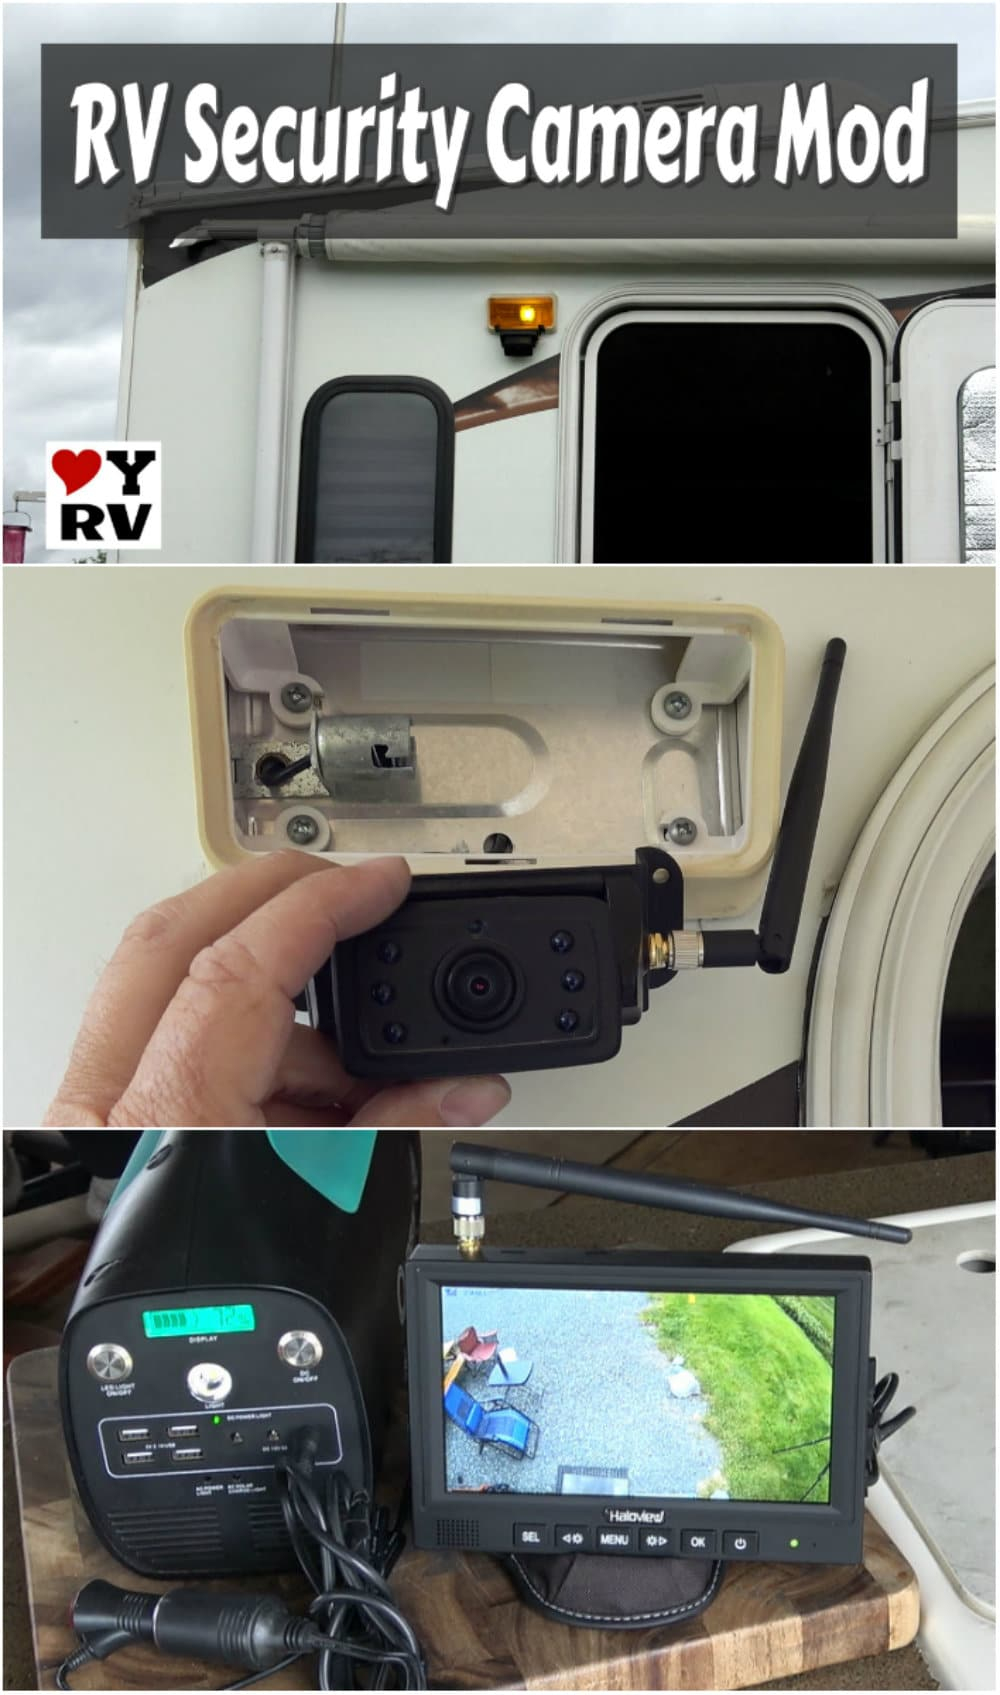 DIY RV Security Camera Mod using a Haloview Backup Camera System by Love Your RV https://www.loveyourrv.com